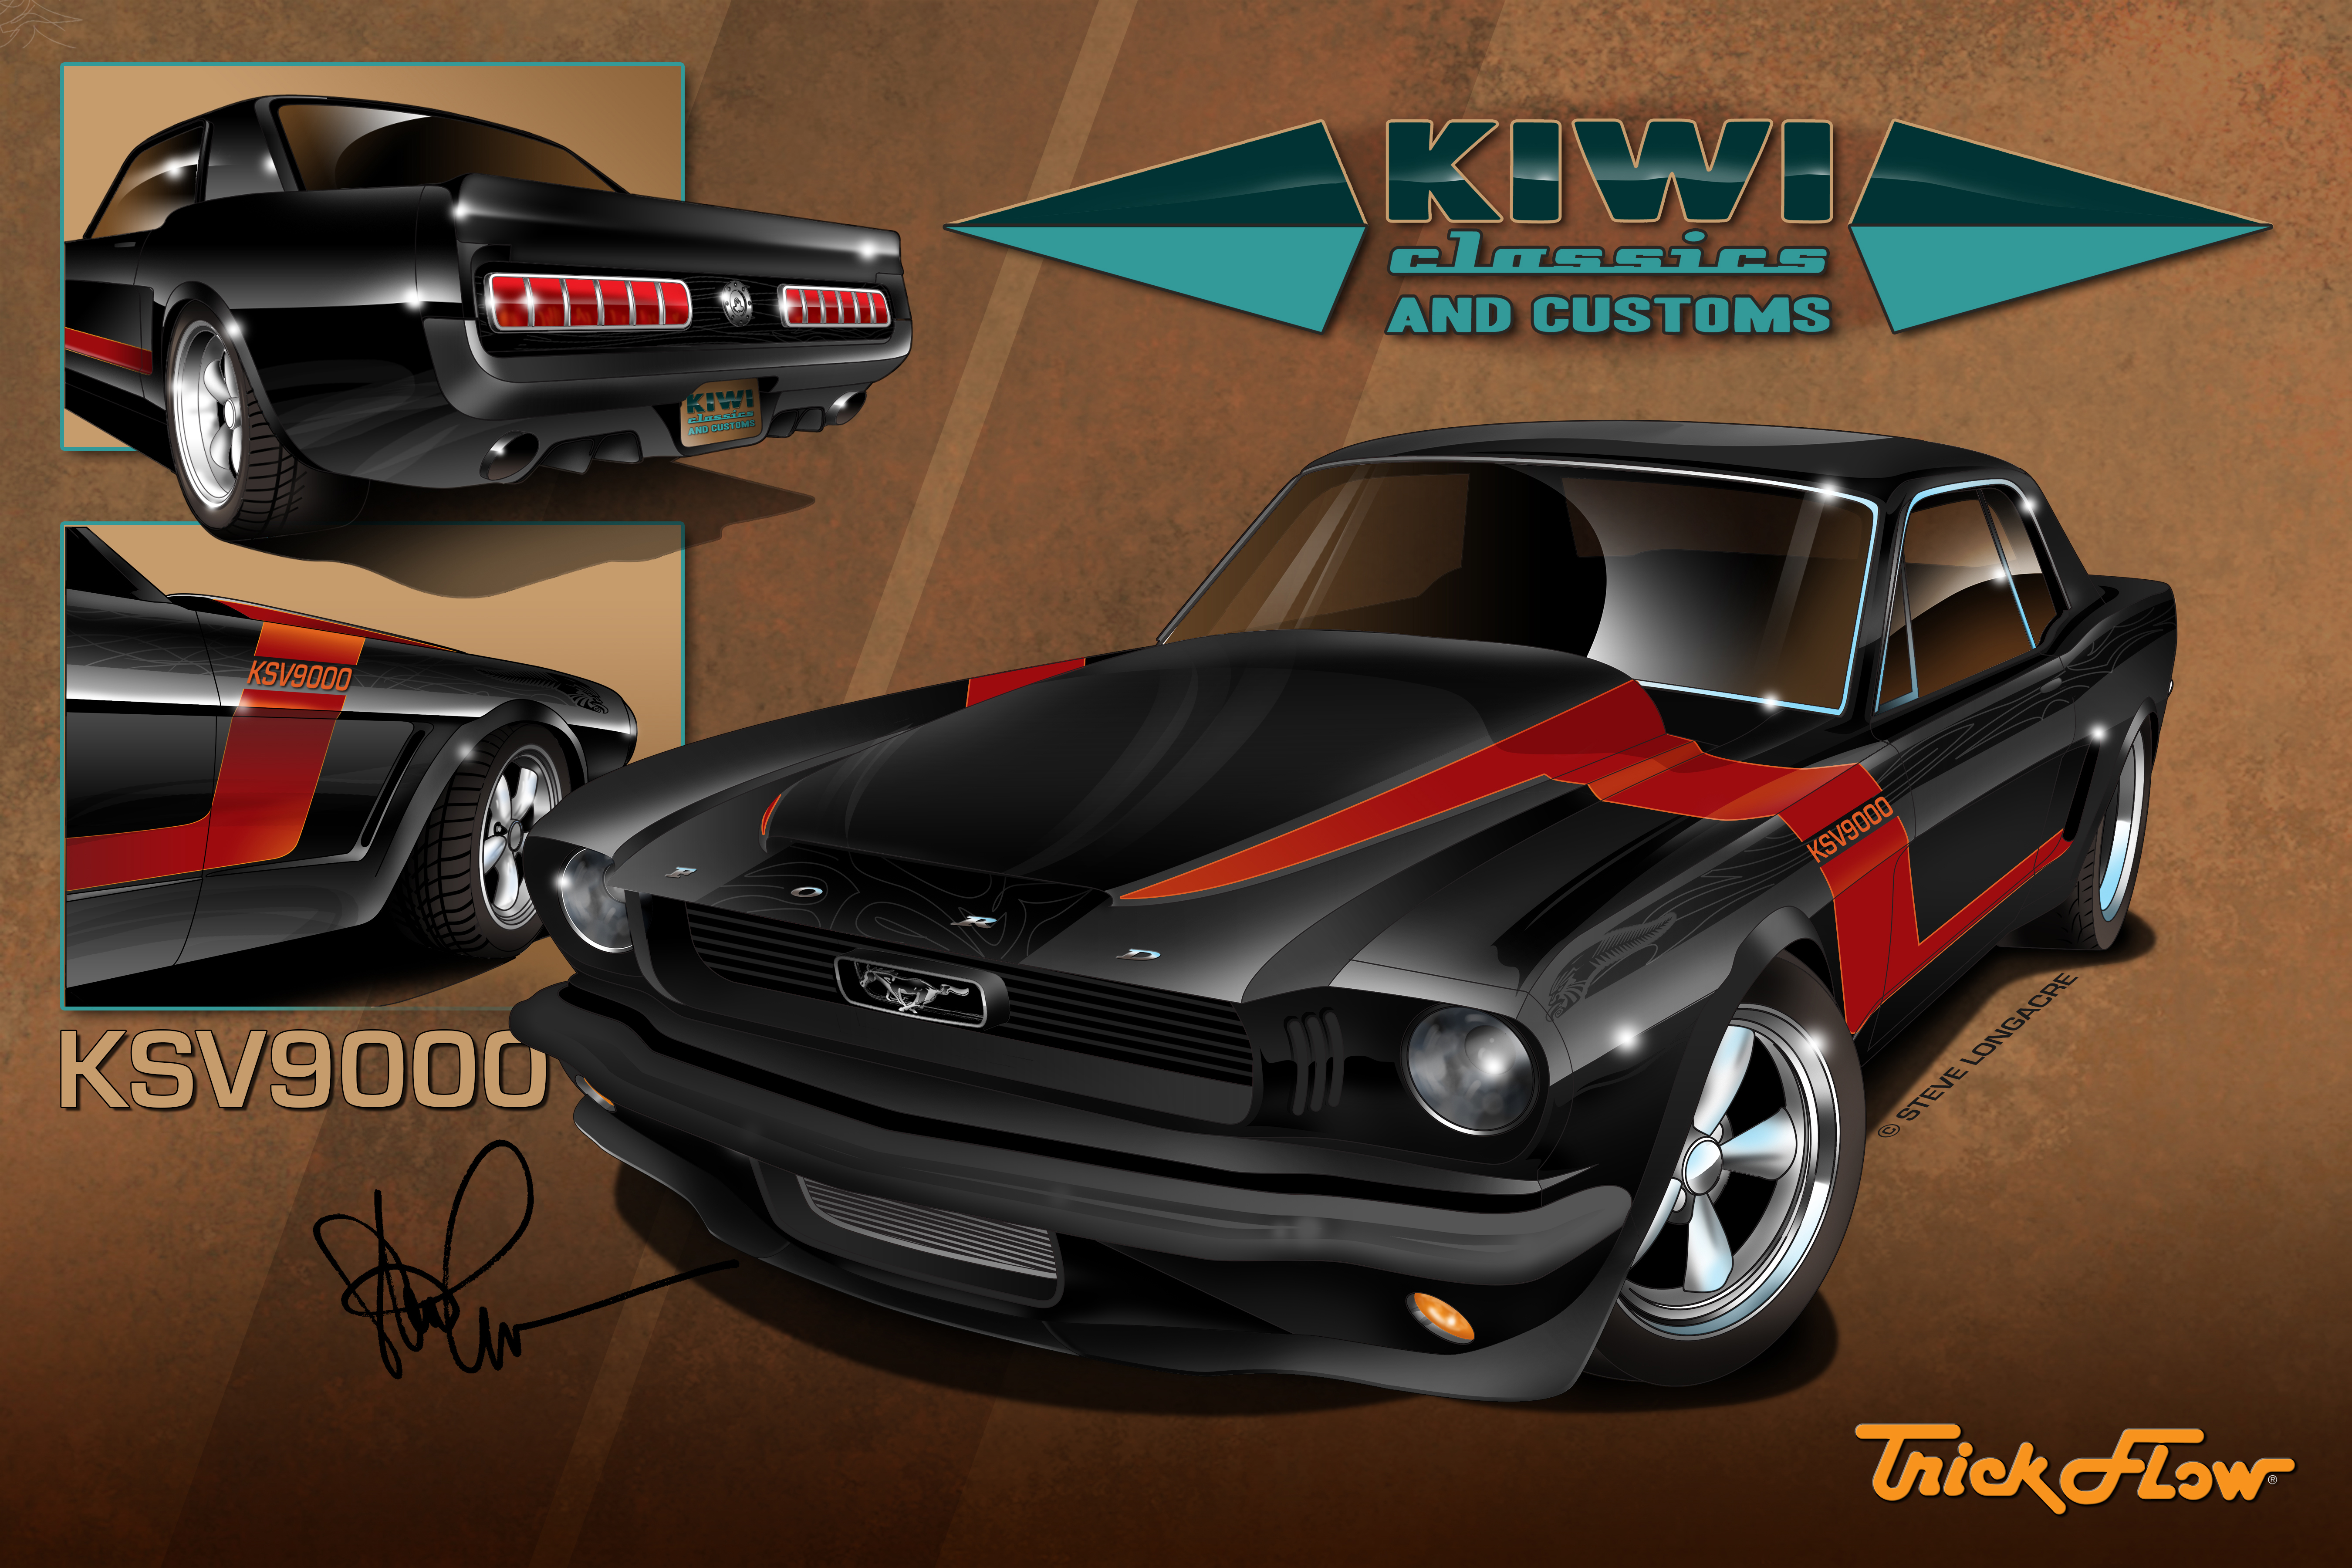 Trick flow specialties to display kiwi customs ksv9000 mustang at print malvernweather Image collections